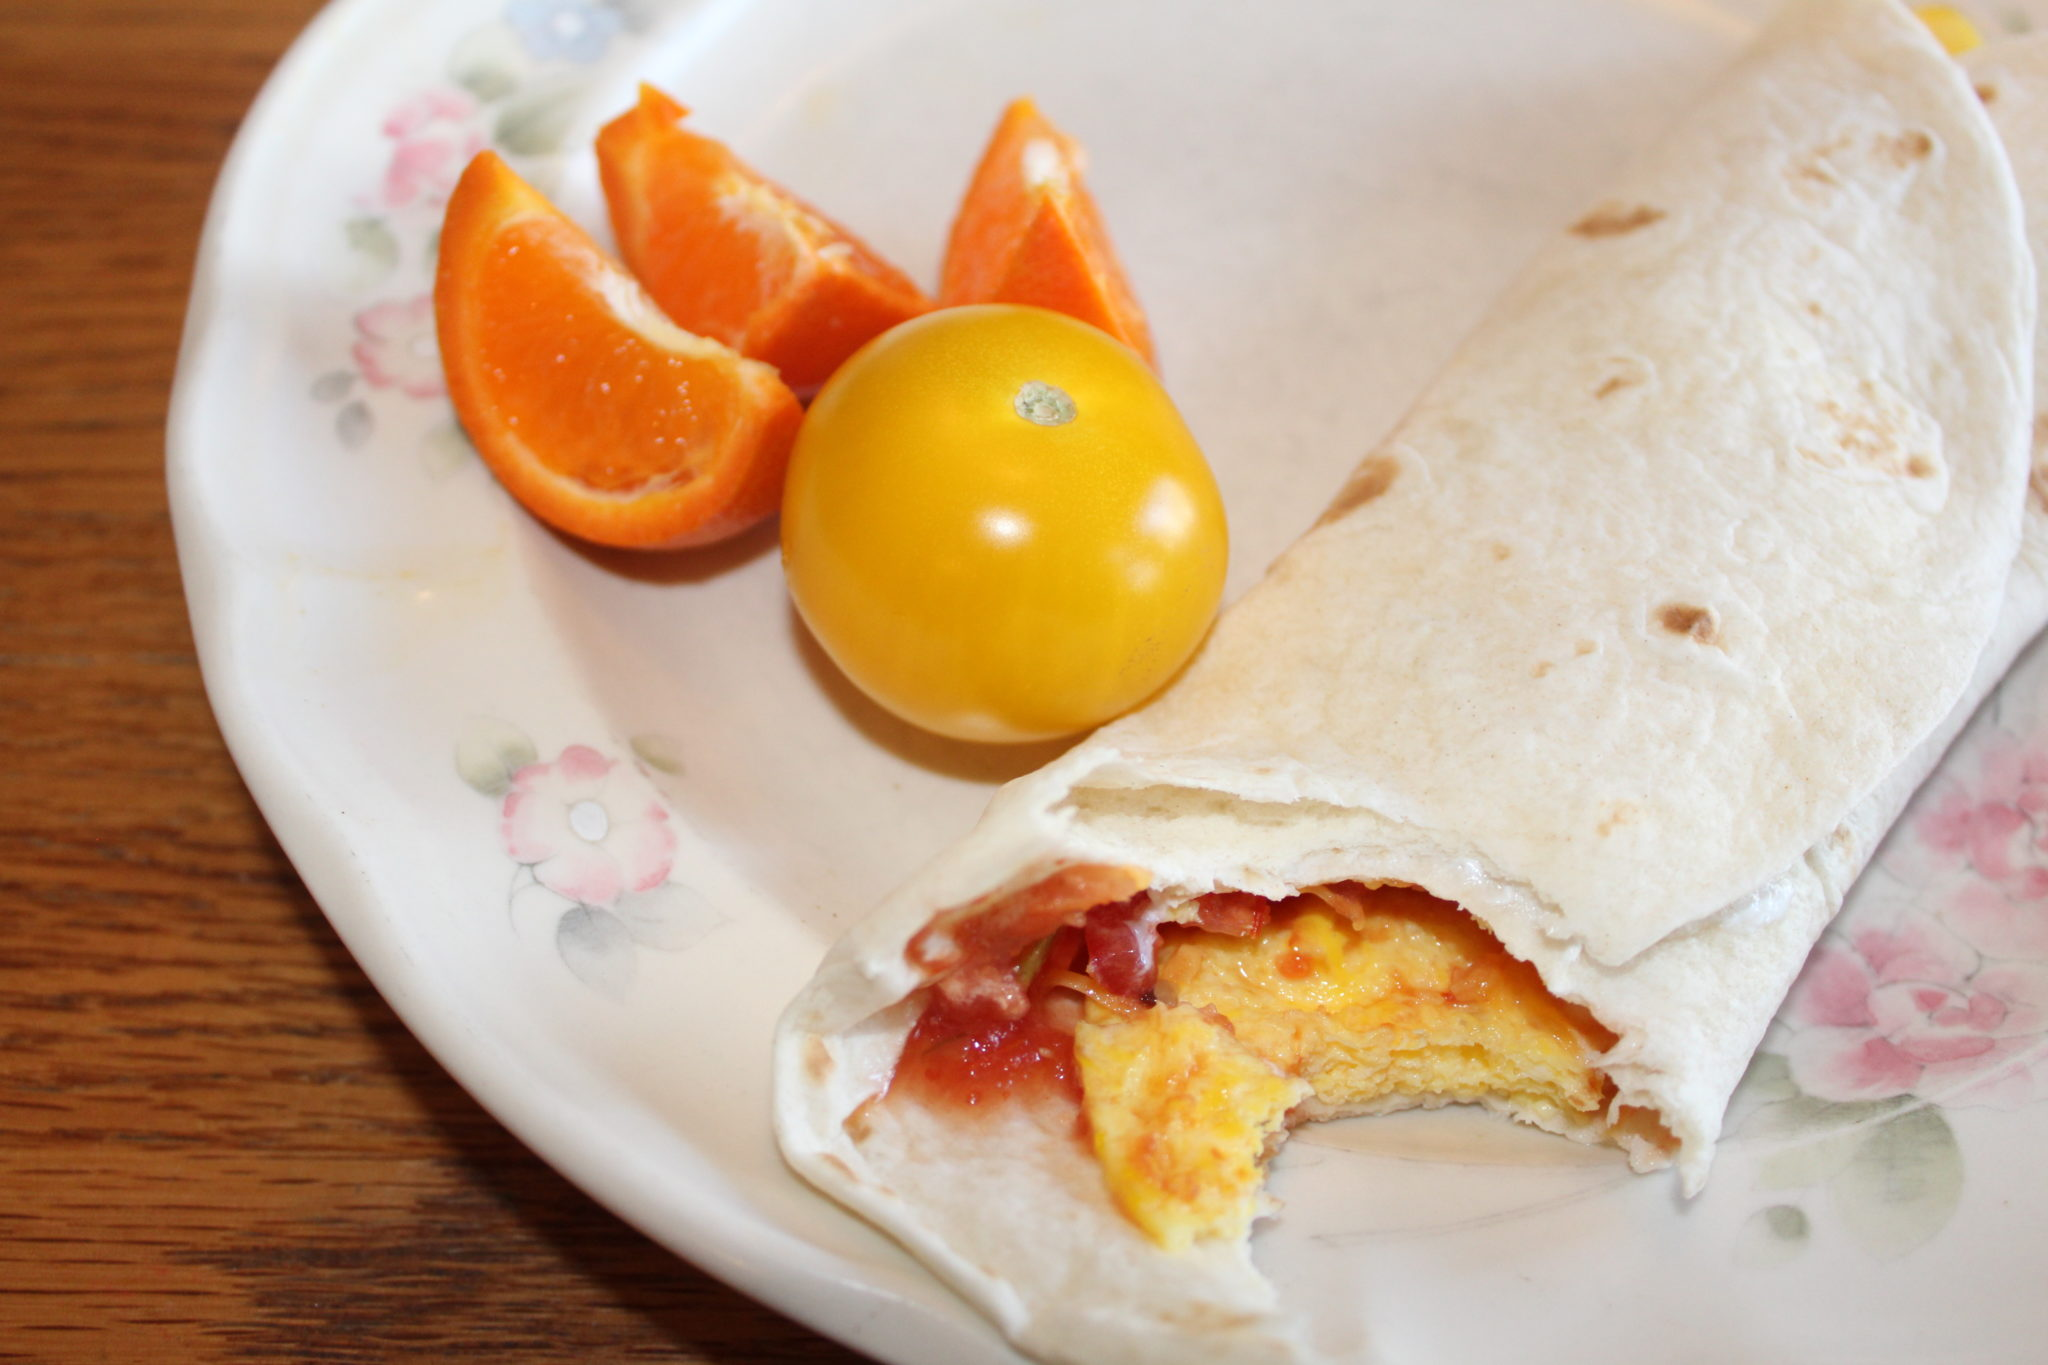 Simple Quick Easy 7 Ones Egg Burrito recipe. 7 ingredients all in increments of 1. Cook 1 minute. Makes 1 burrito.